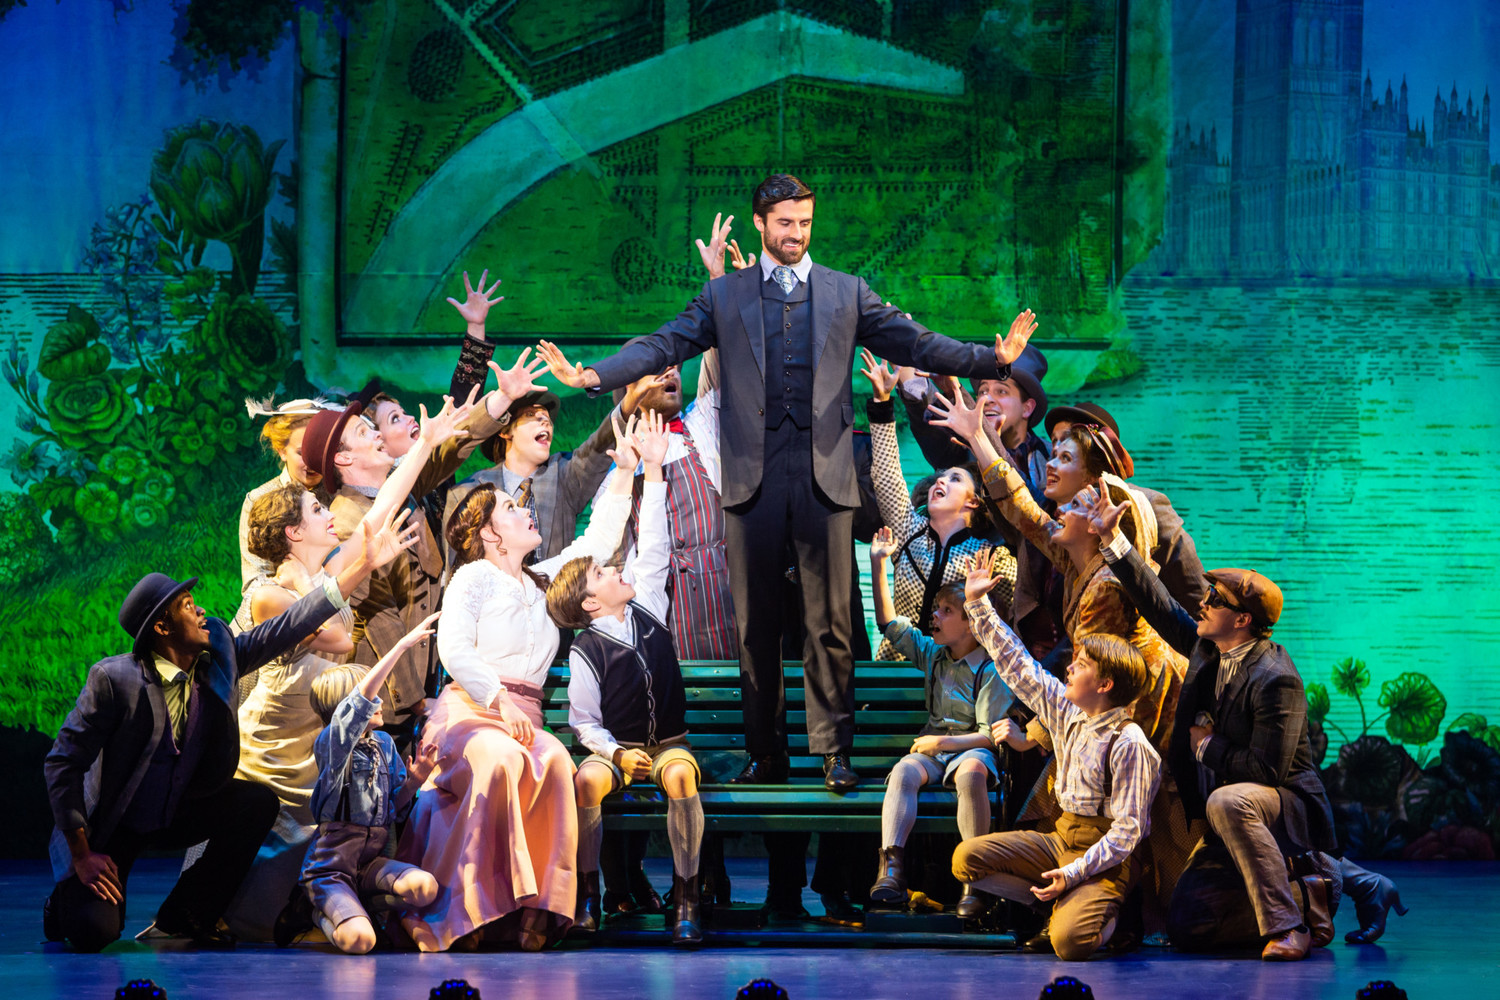 BWW Interview: Ethan Stokes of FINDING NEVERLAND at Overture Center